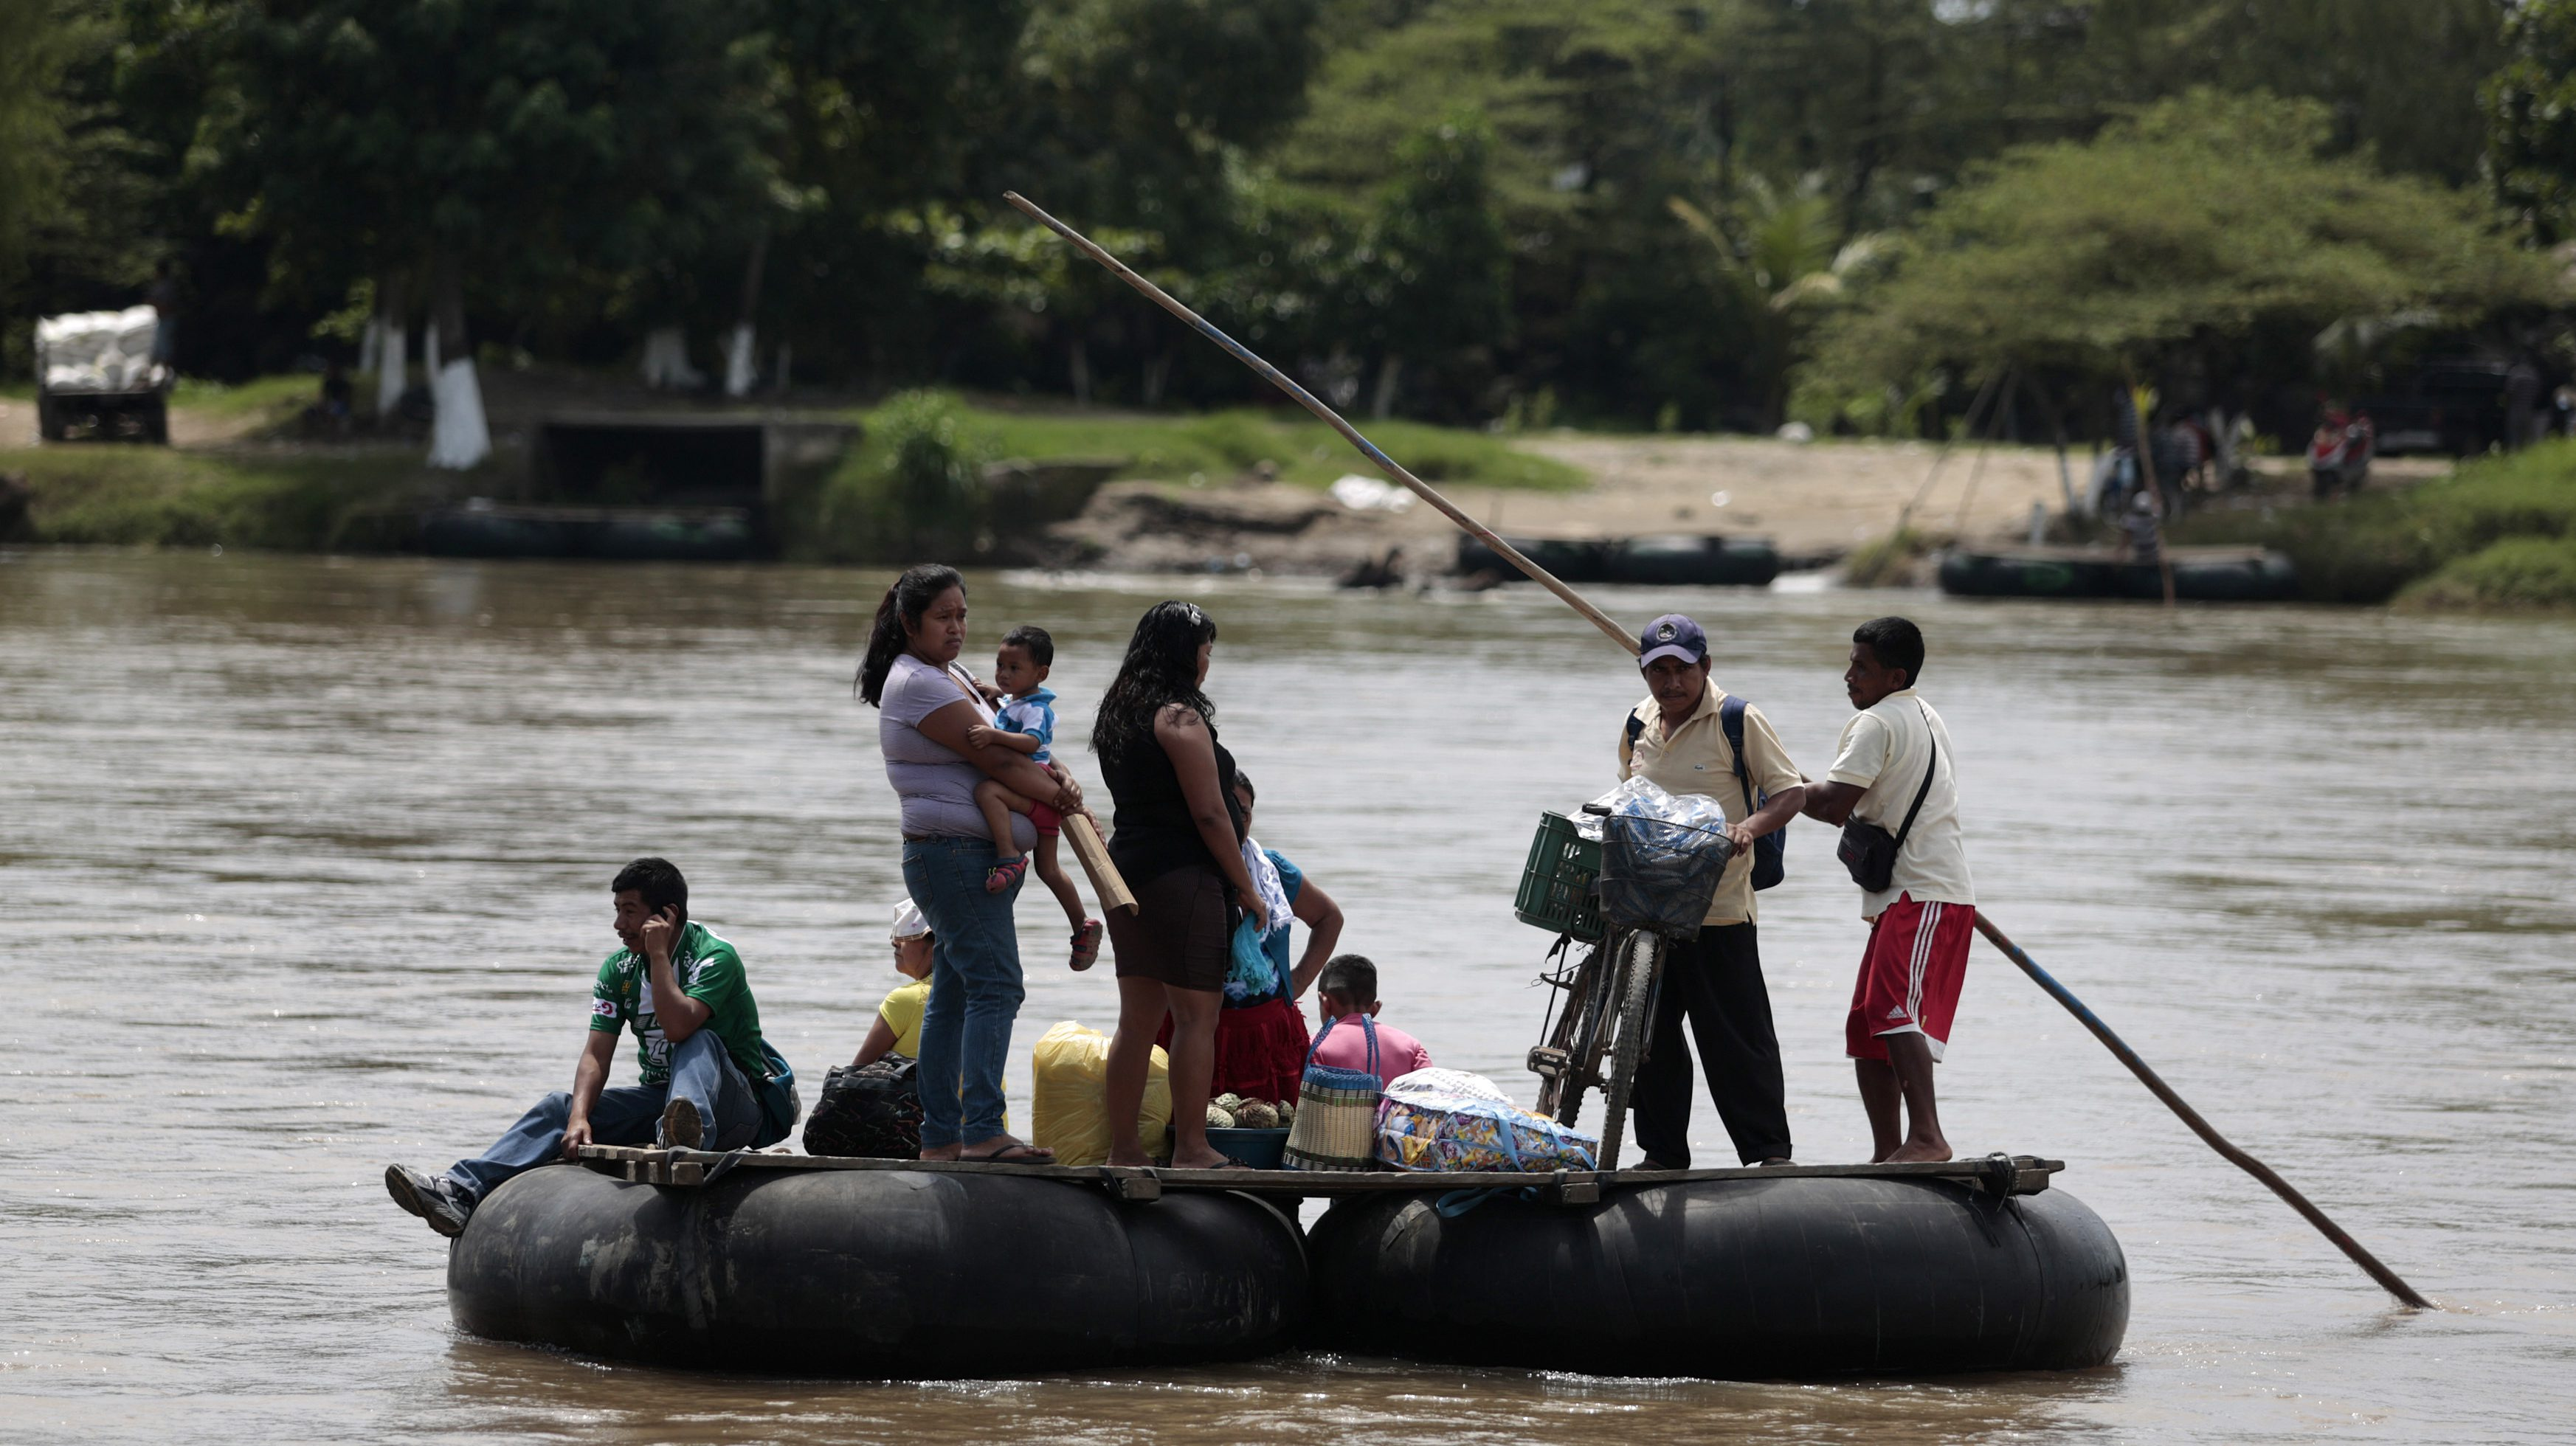 A raft with people from Guatemala, bound for Mexico in the Suchiate river